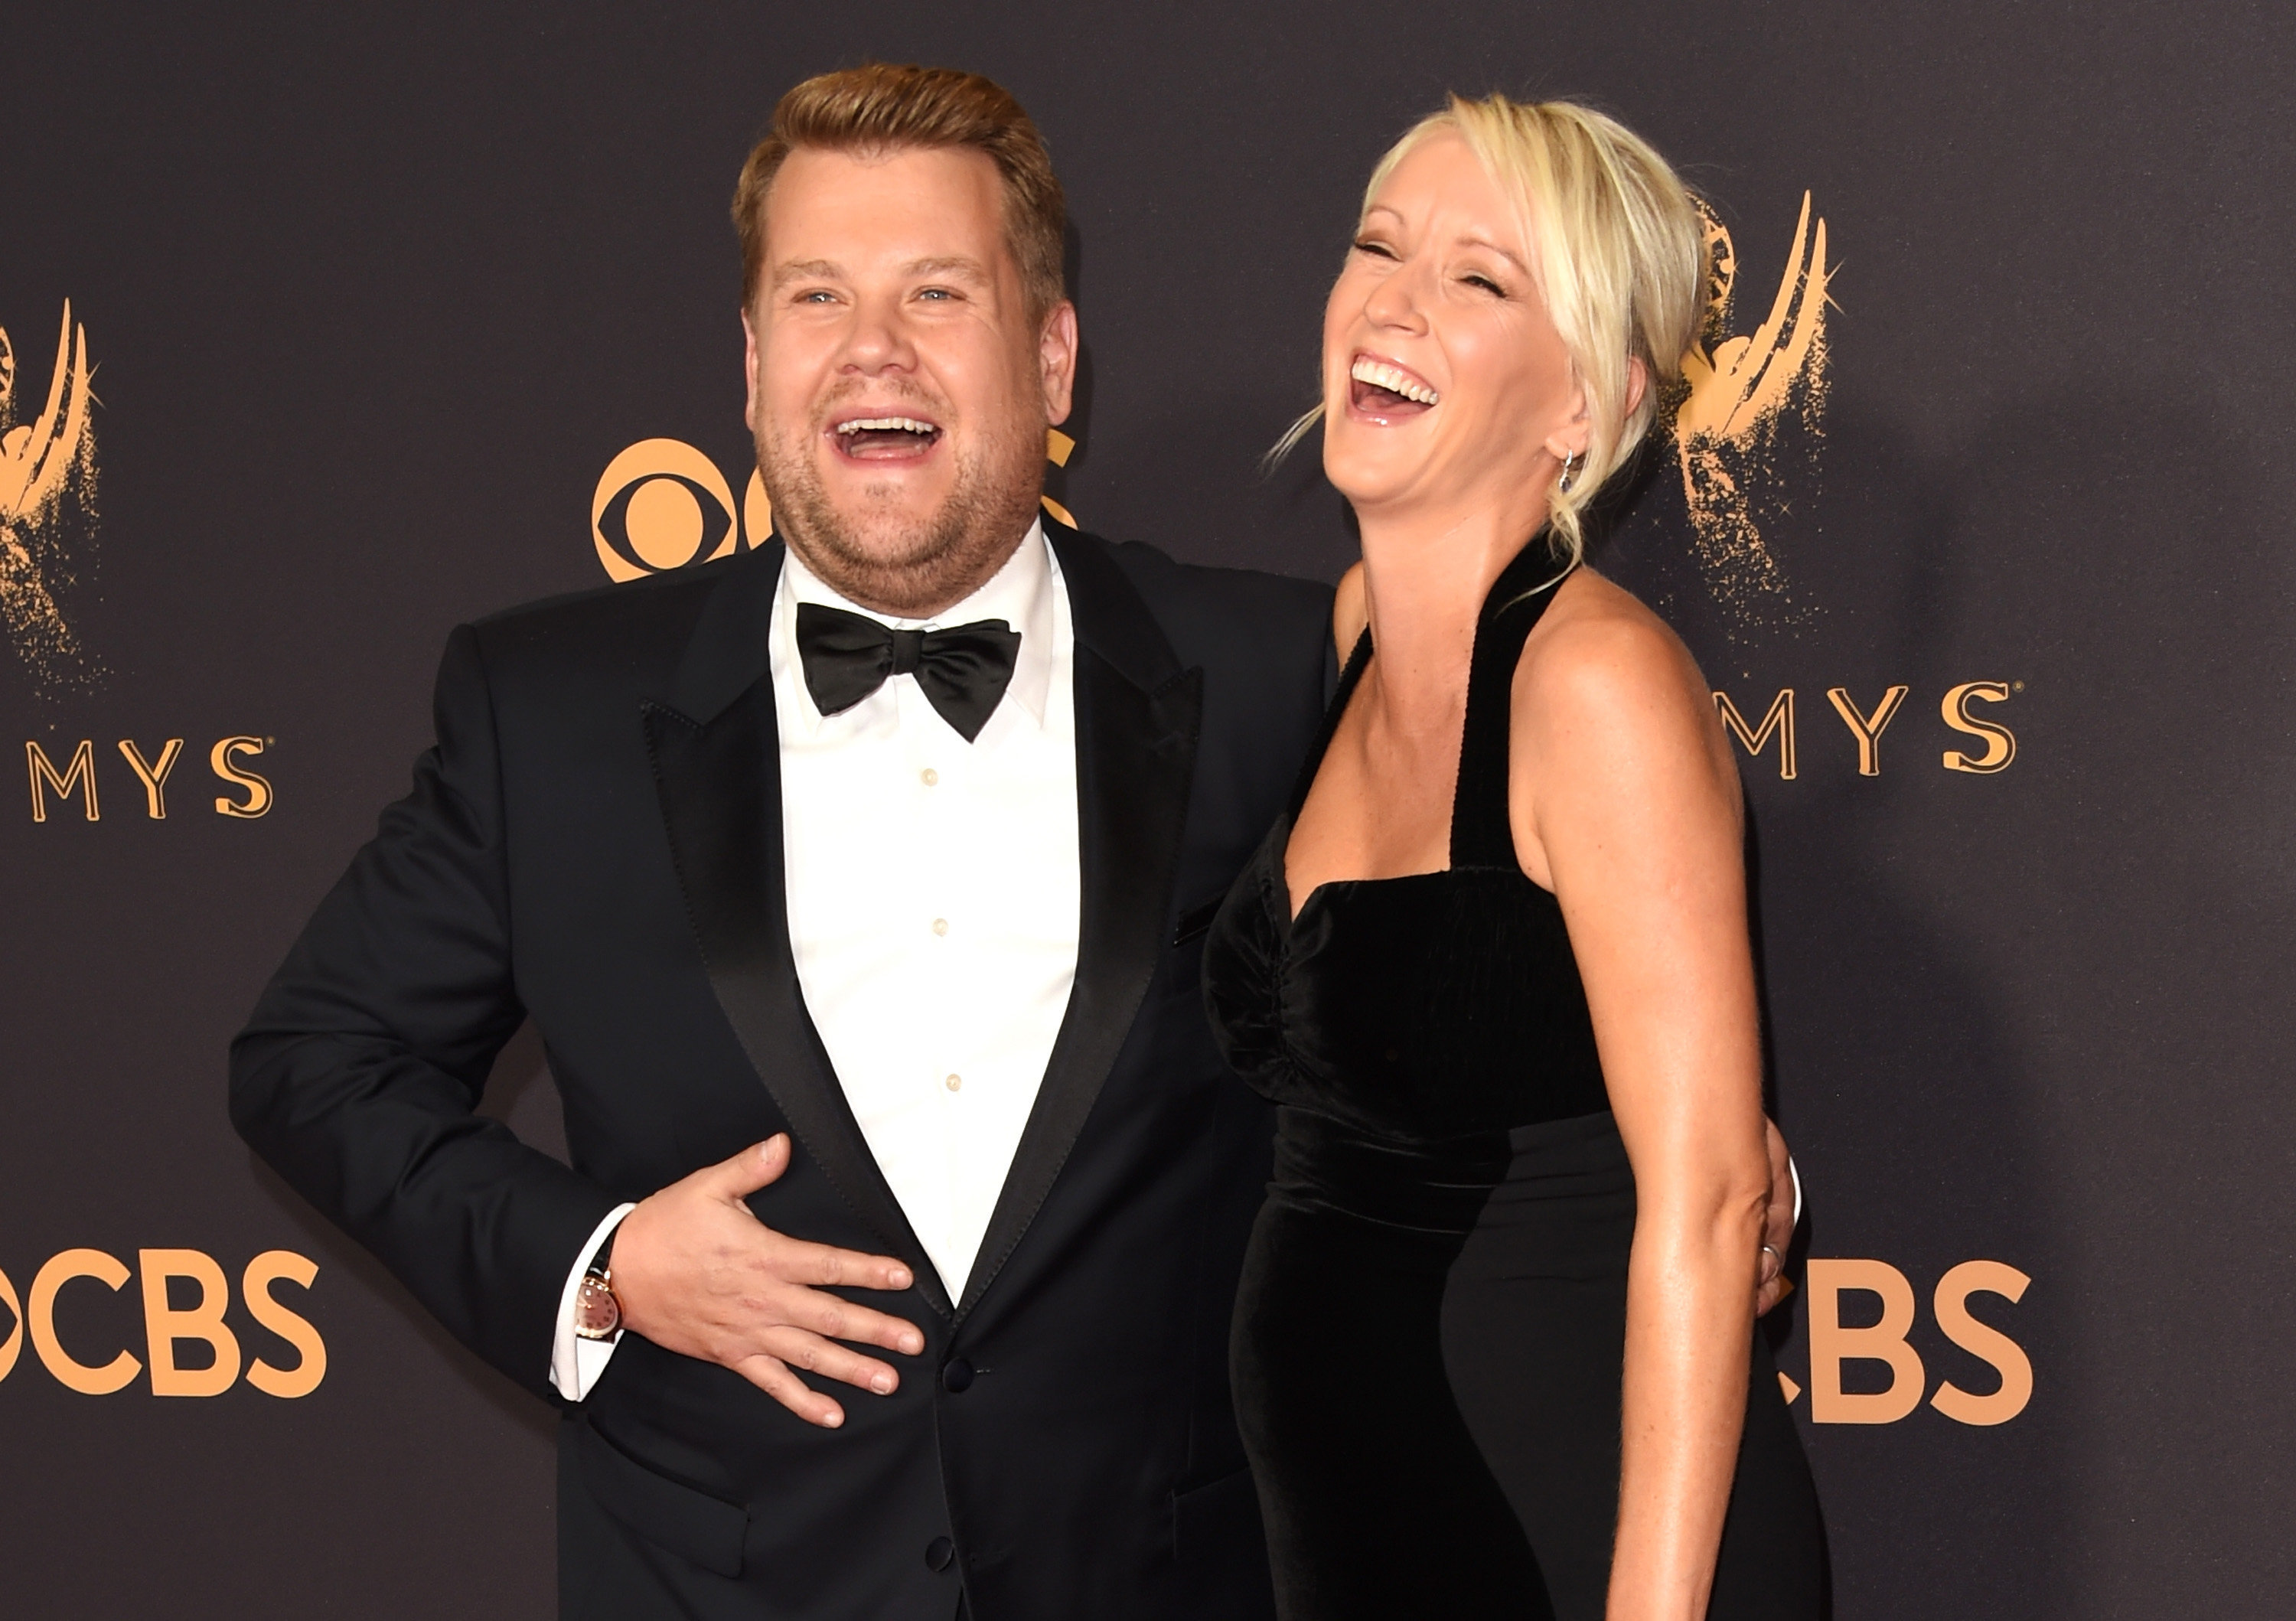 James Corden's Wife Julia Carey Has Given Birth To Their Third Baby